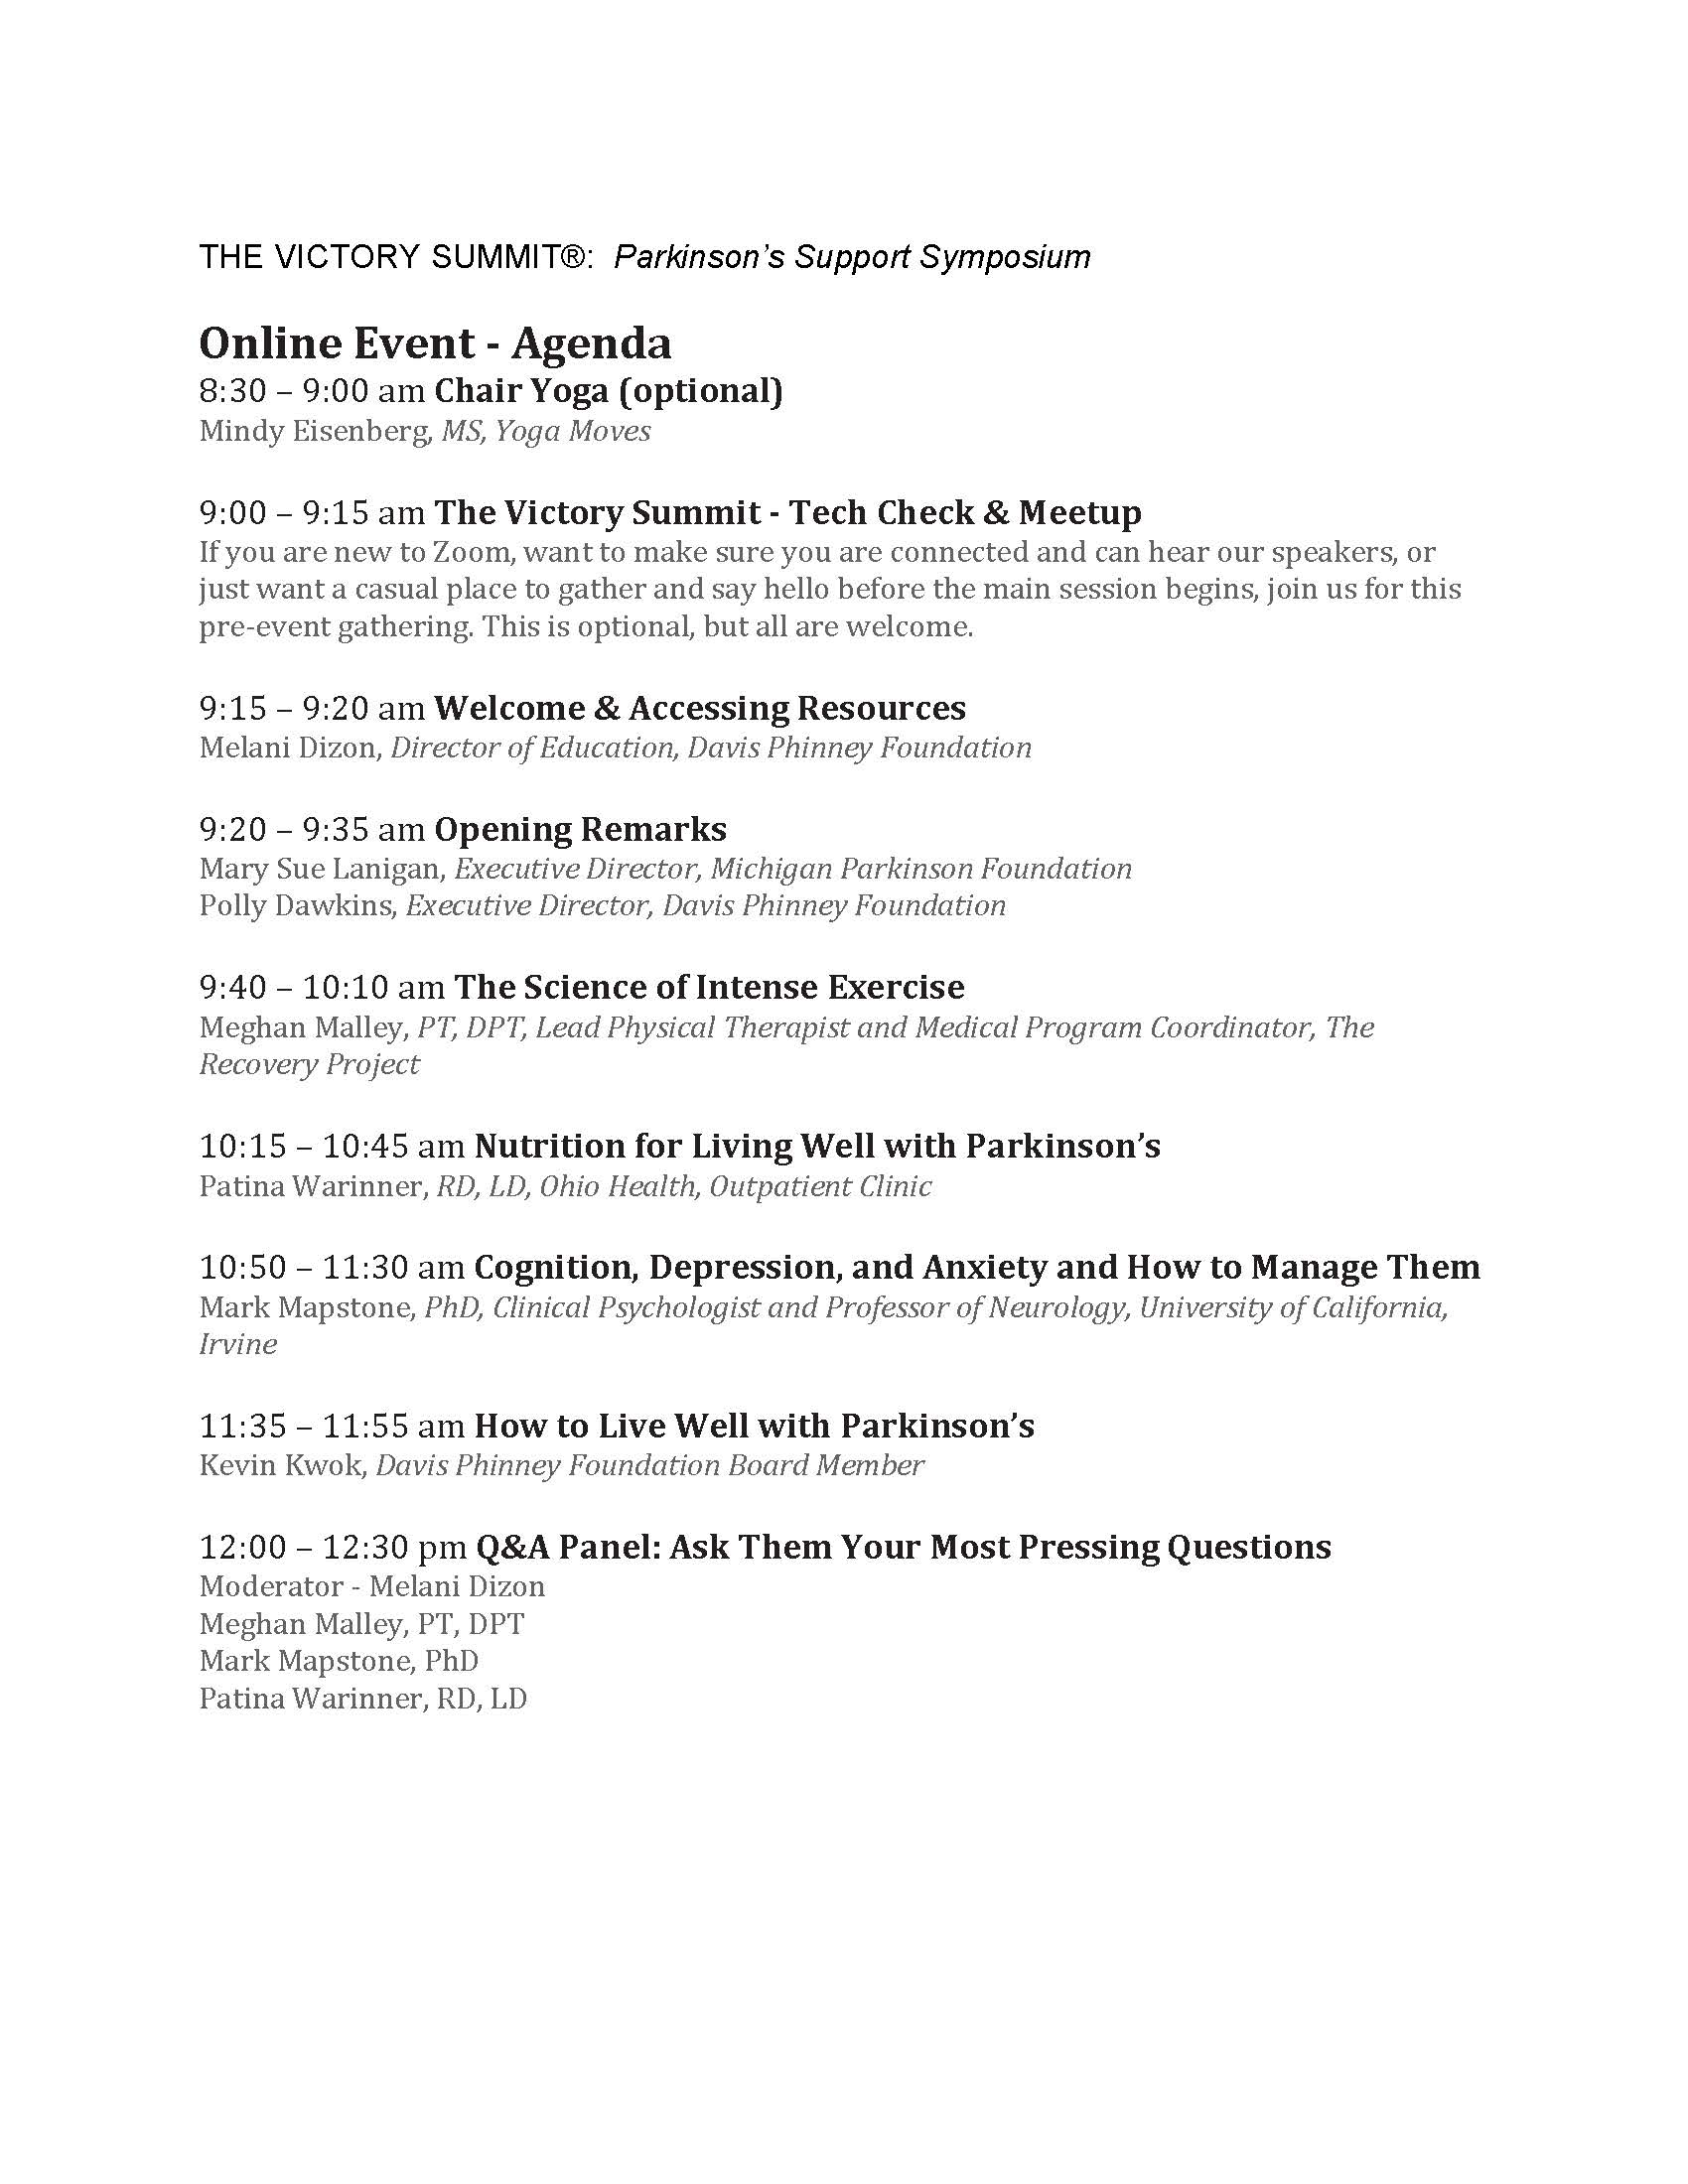 Symposium Agenda for website 4 17 20